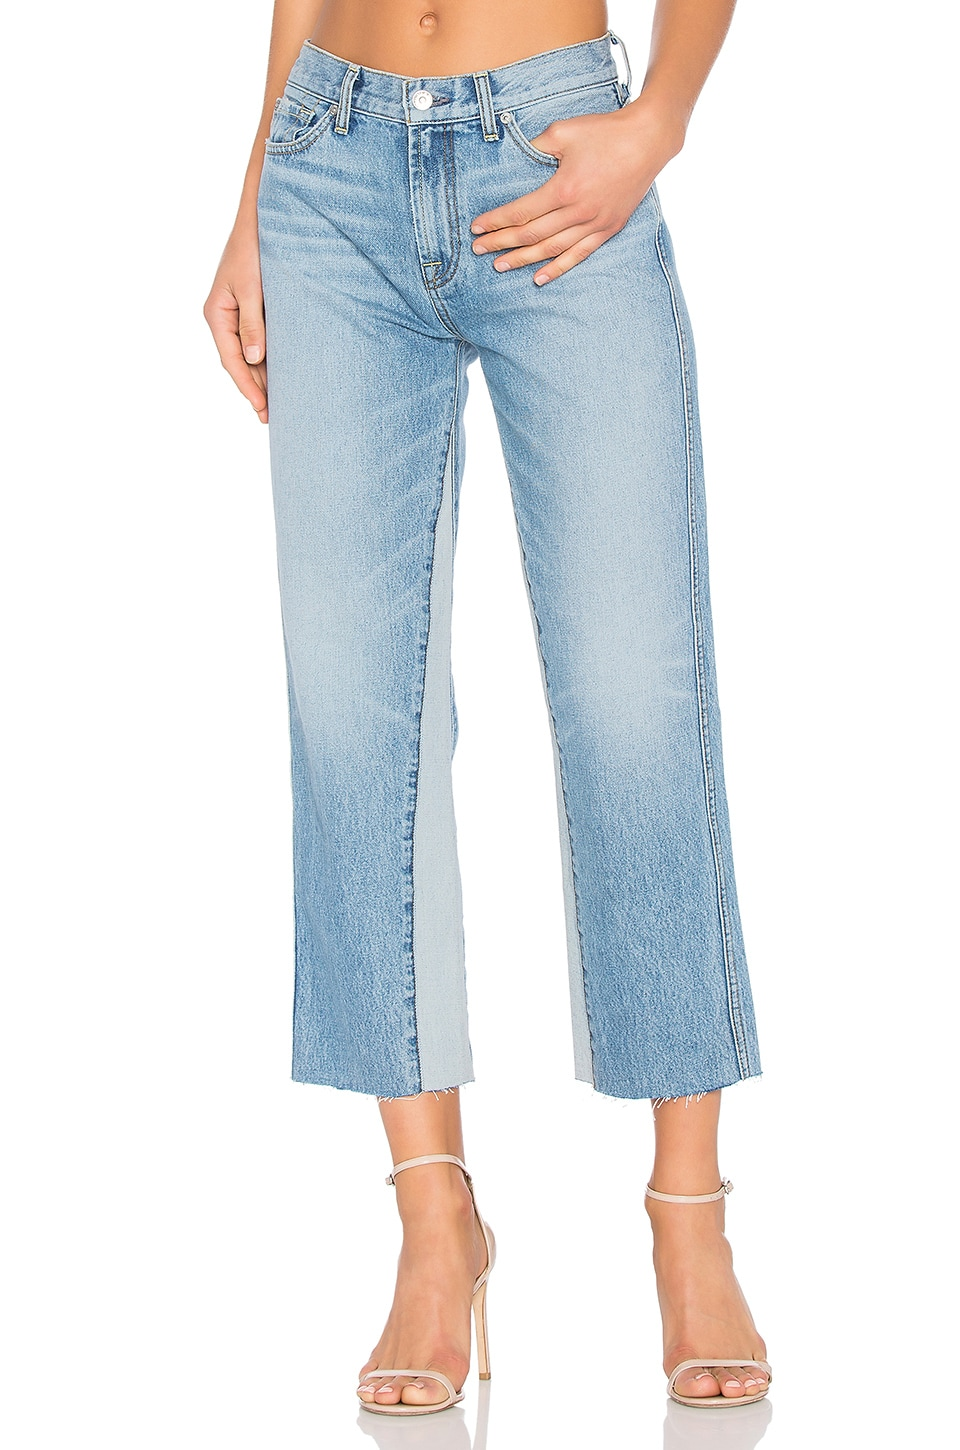 Kiki with Frayed Hem by 7 For All Mankind